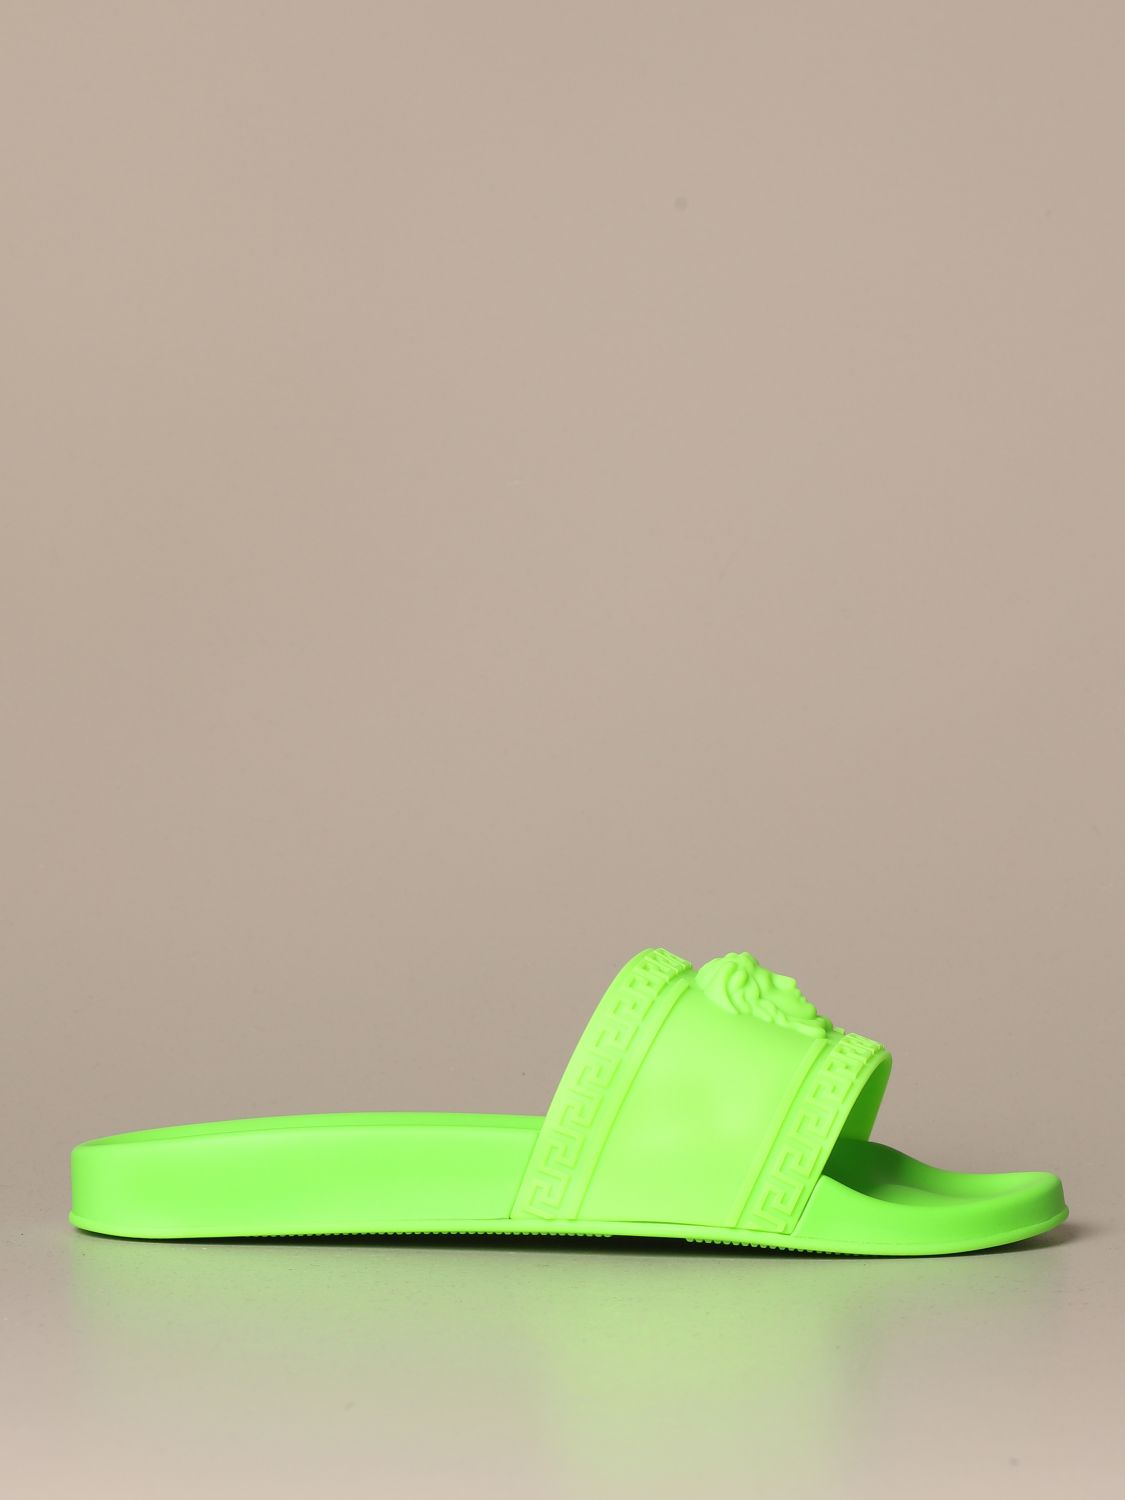 Palazzo Versace sandal in fluo rubber